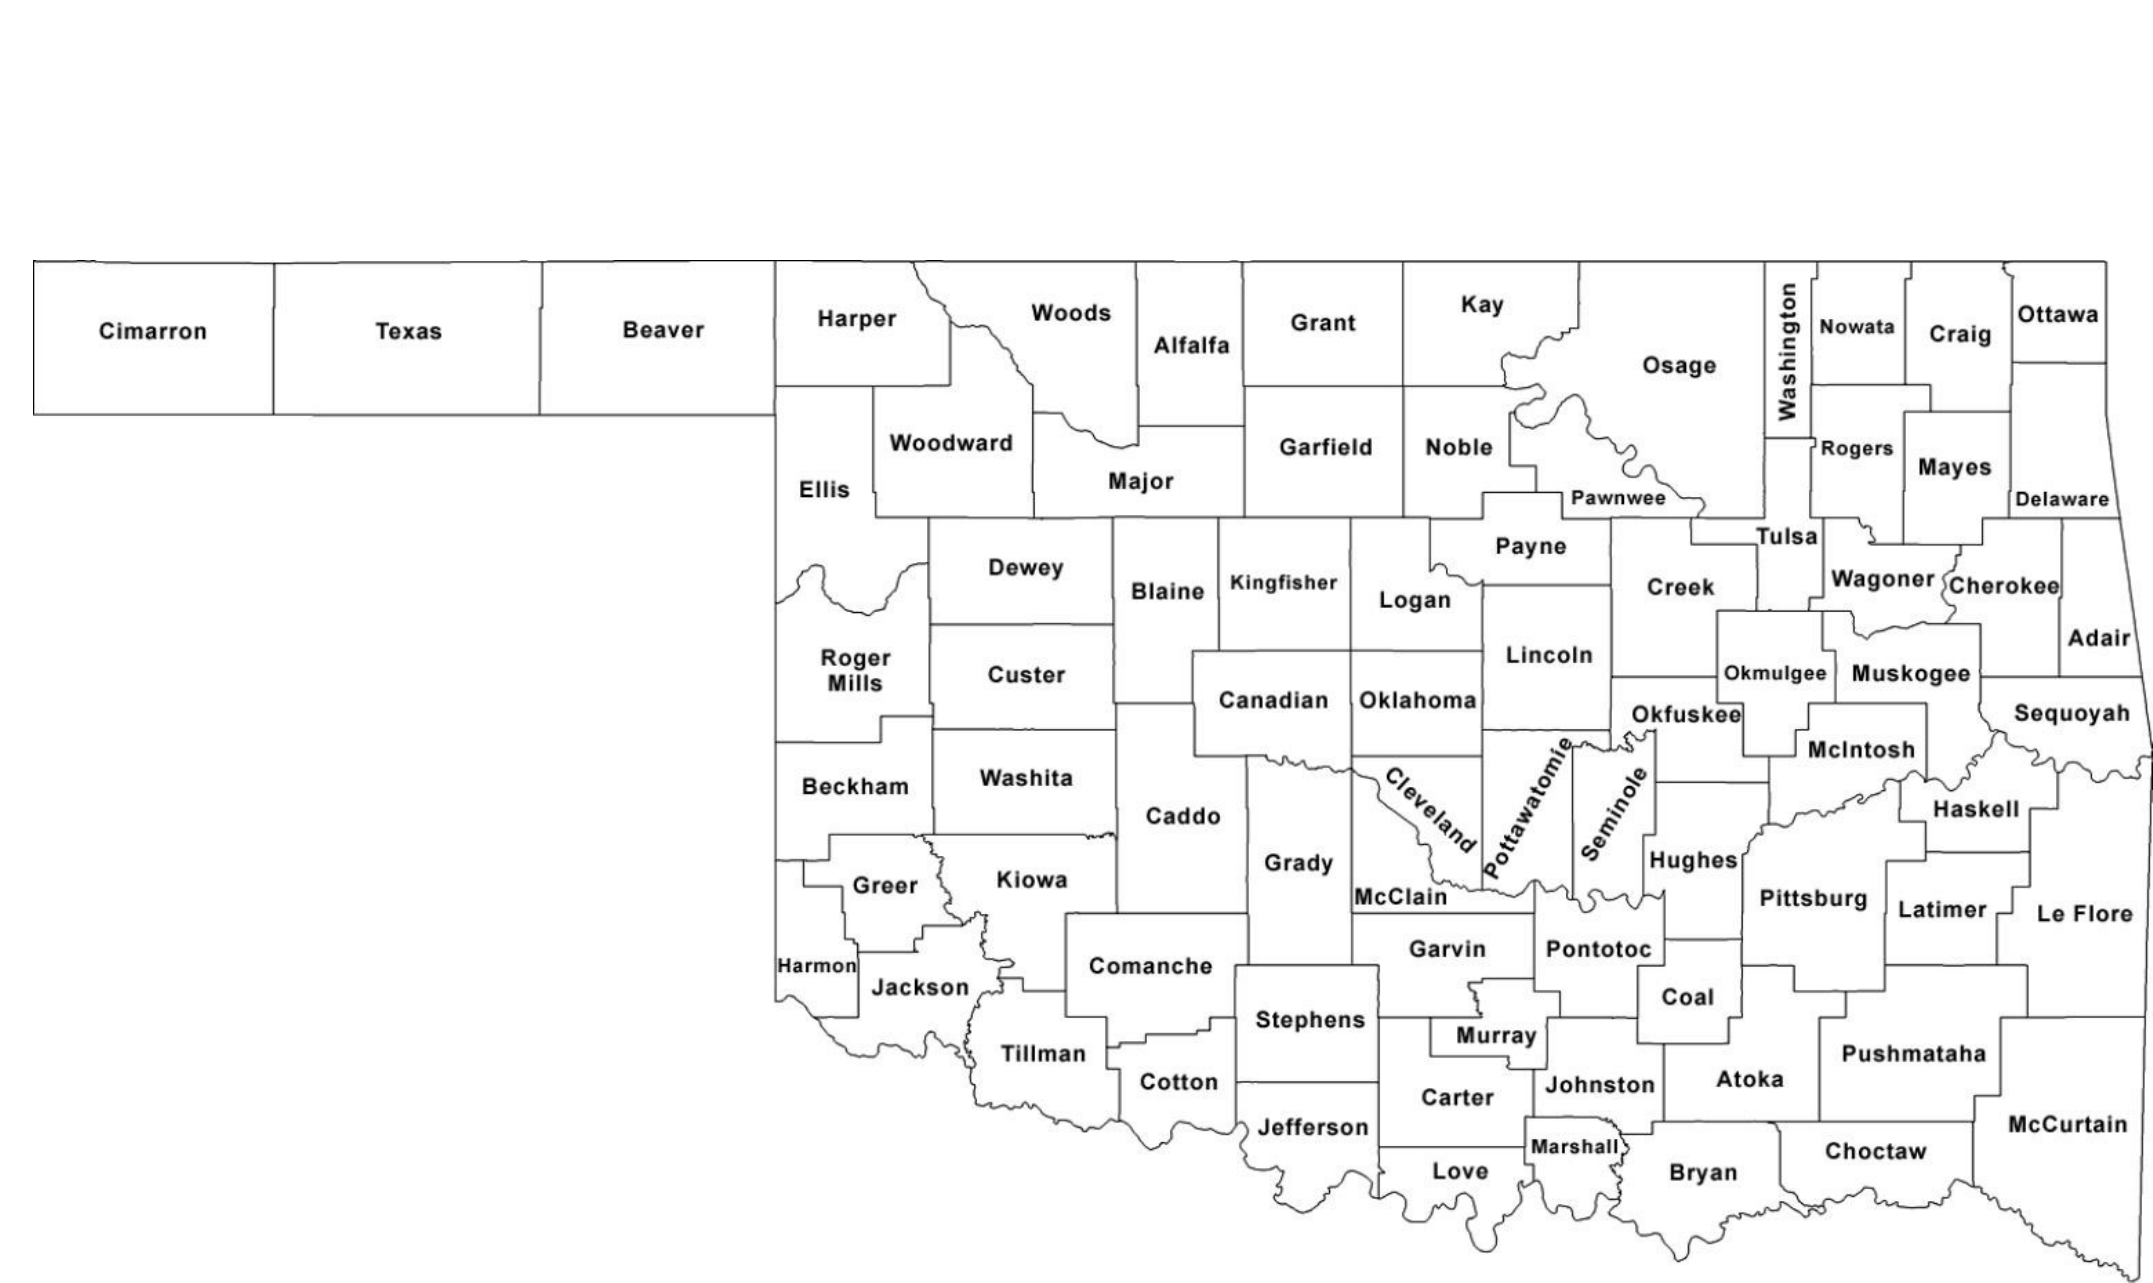 Oklahoma County Map With County Names Free Download - Counties of oklahoma map